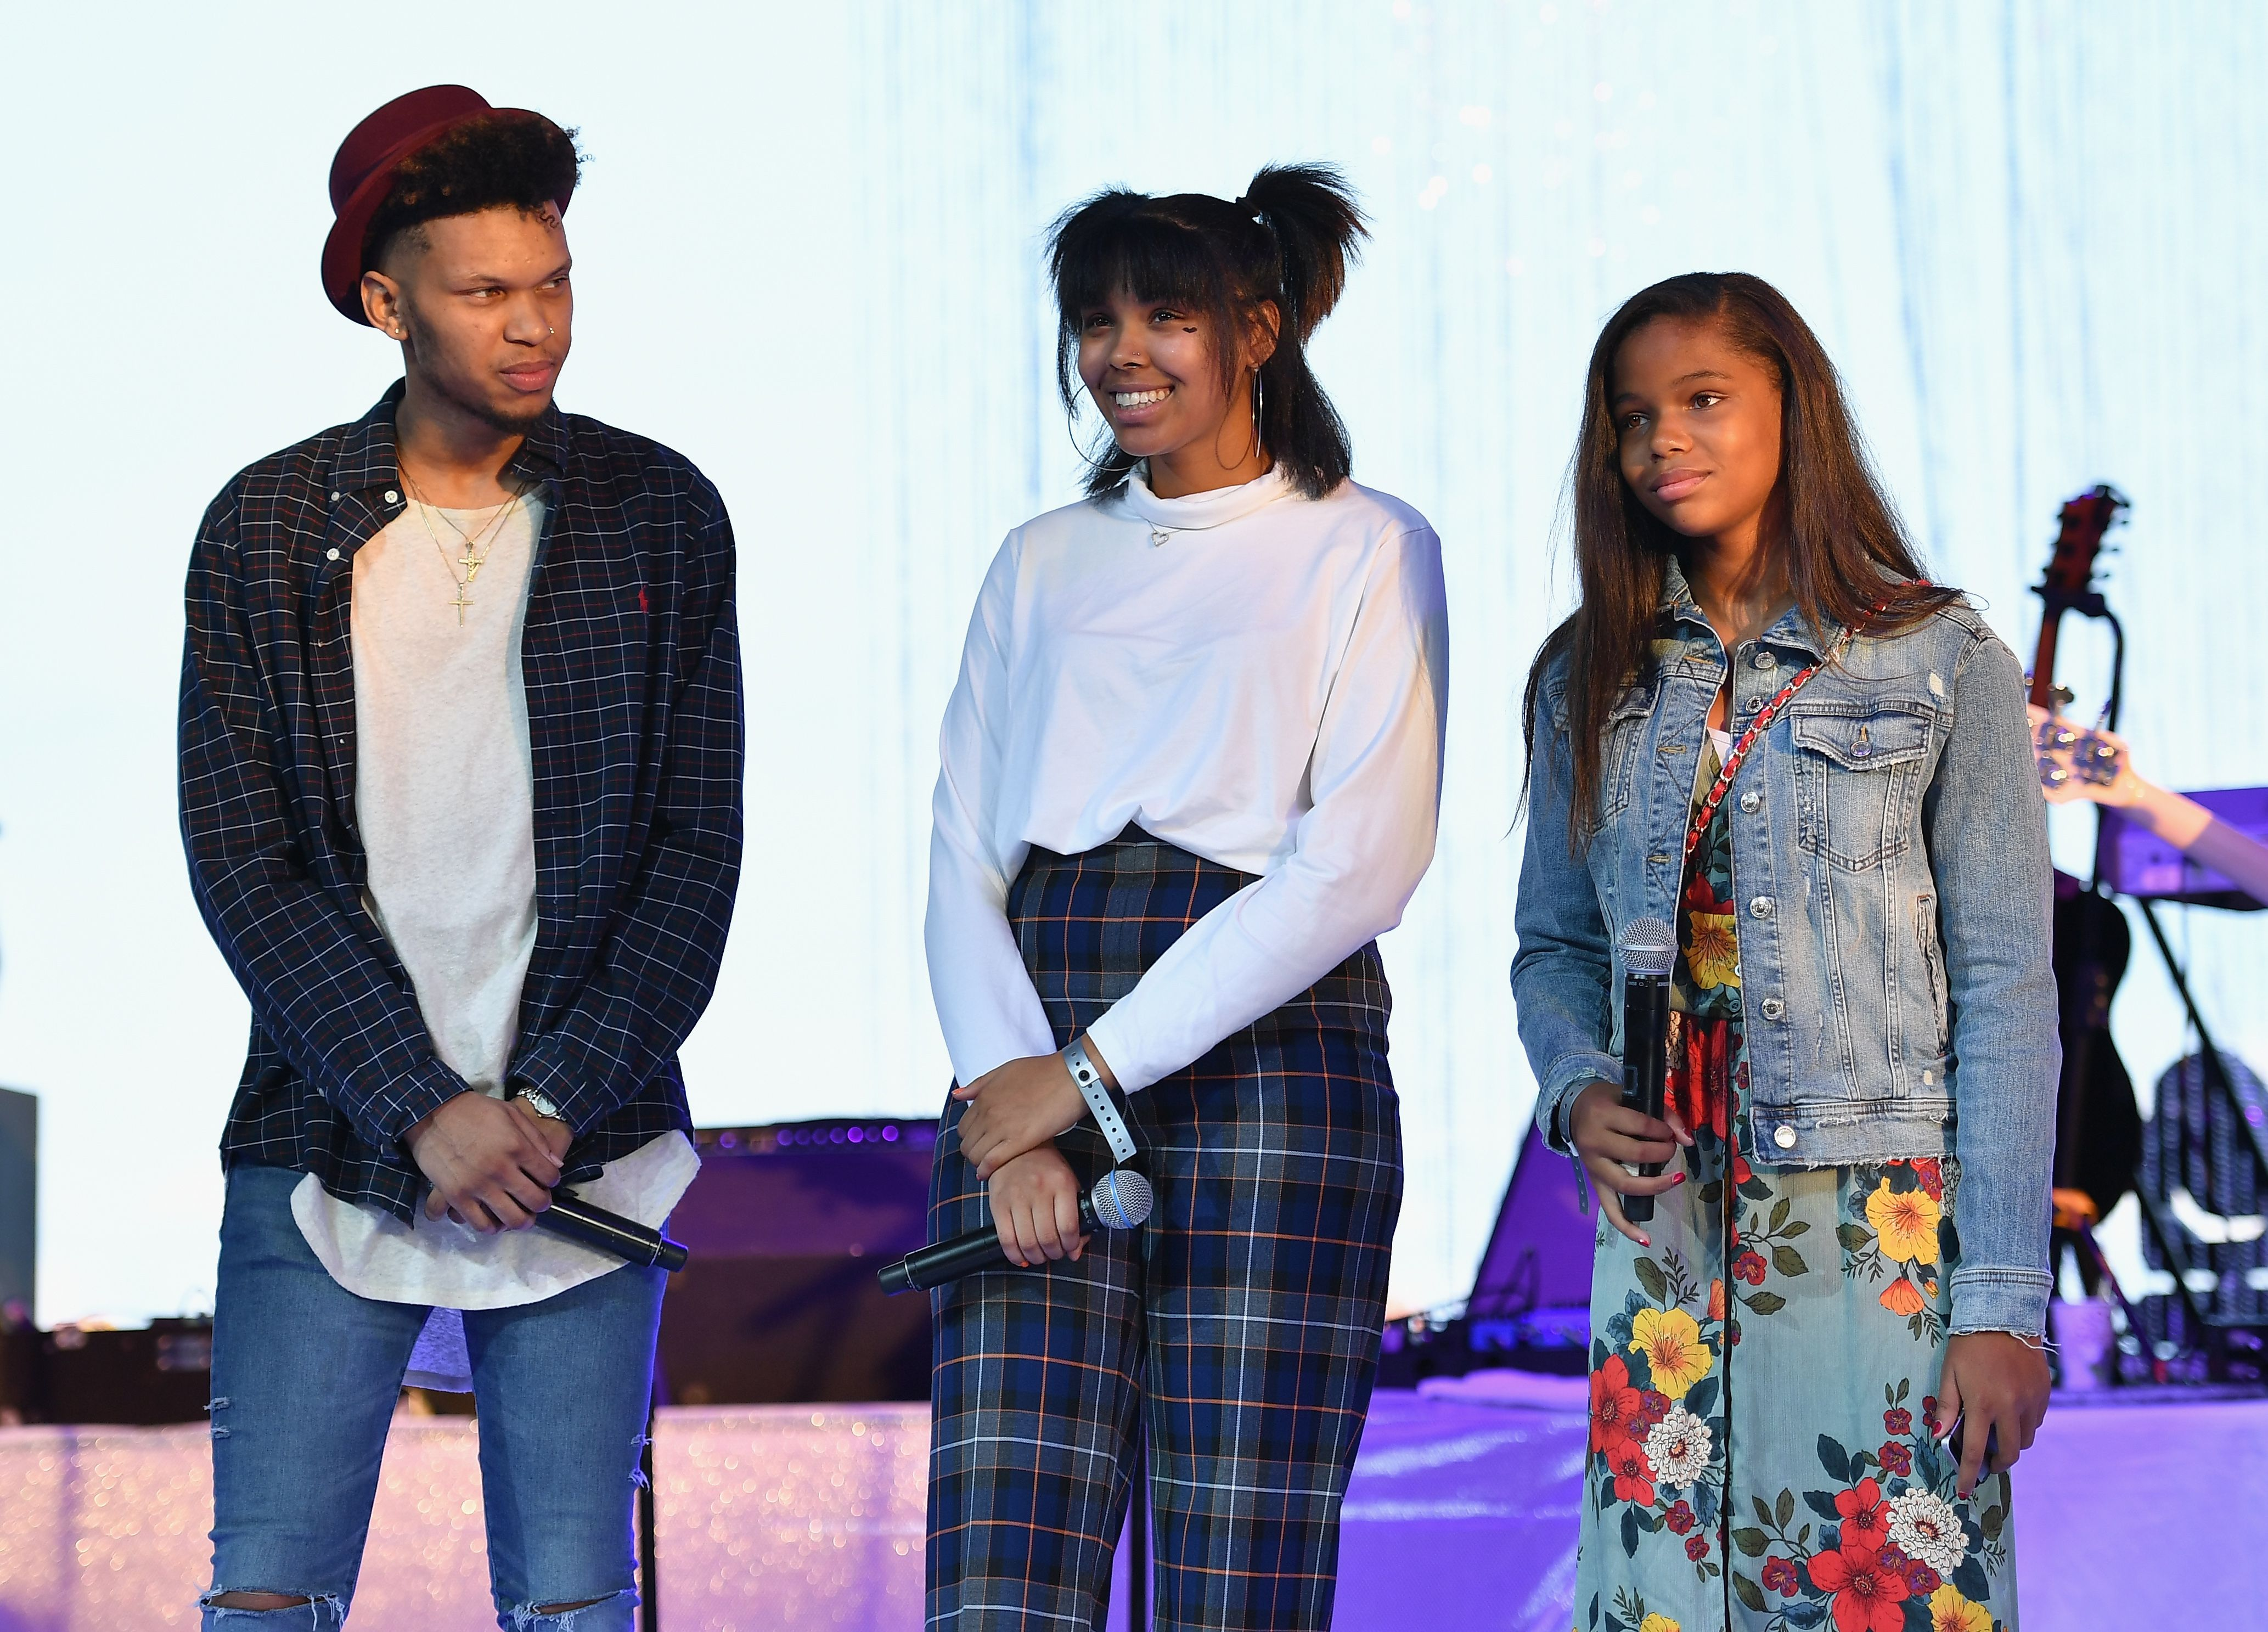 """Grandchildren of Aretha Franklin, Jonah, Victorie and Gracie on stage at the """"A People's Tribute to the Queen"""" event on August 30, 2018 in Detroit, Michigan 